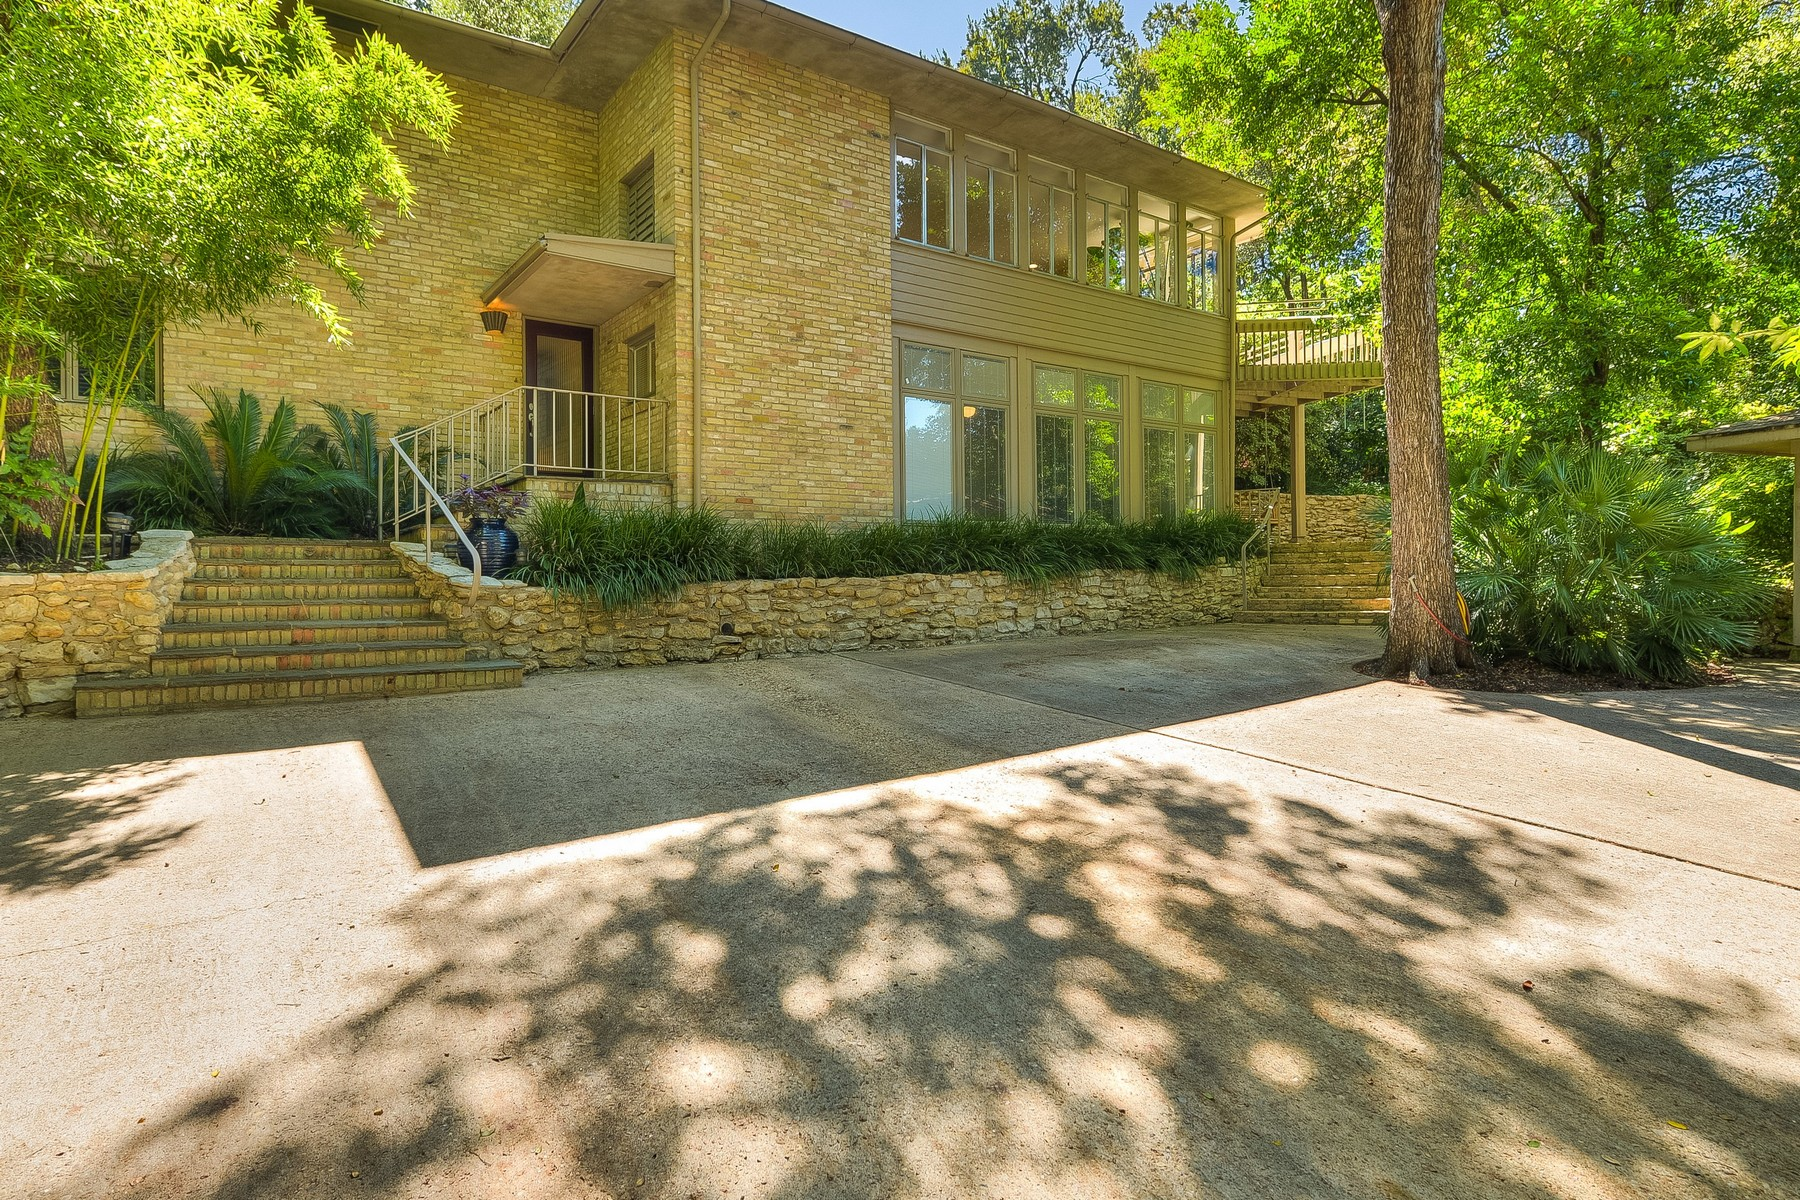 Single Family Home for Sale at Stunning Mid-Century Modern Architecture 2311 Shoal Creek Blvd Austin, Texas 78705 United States